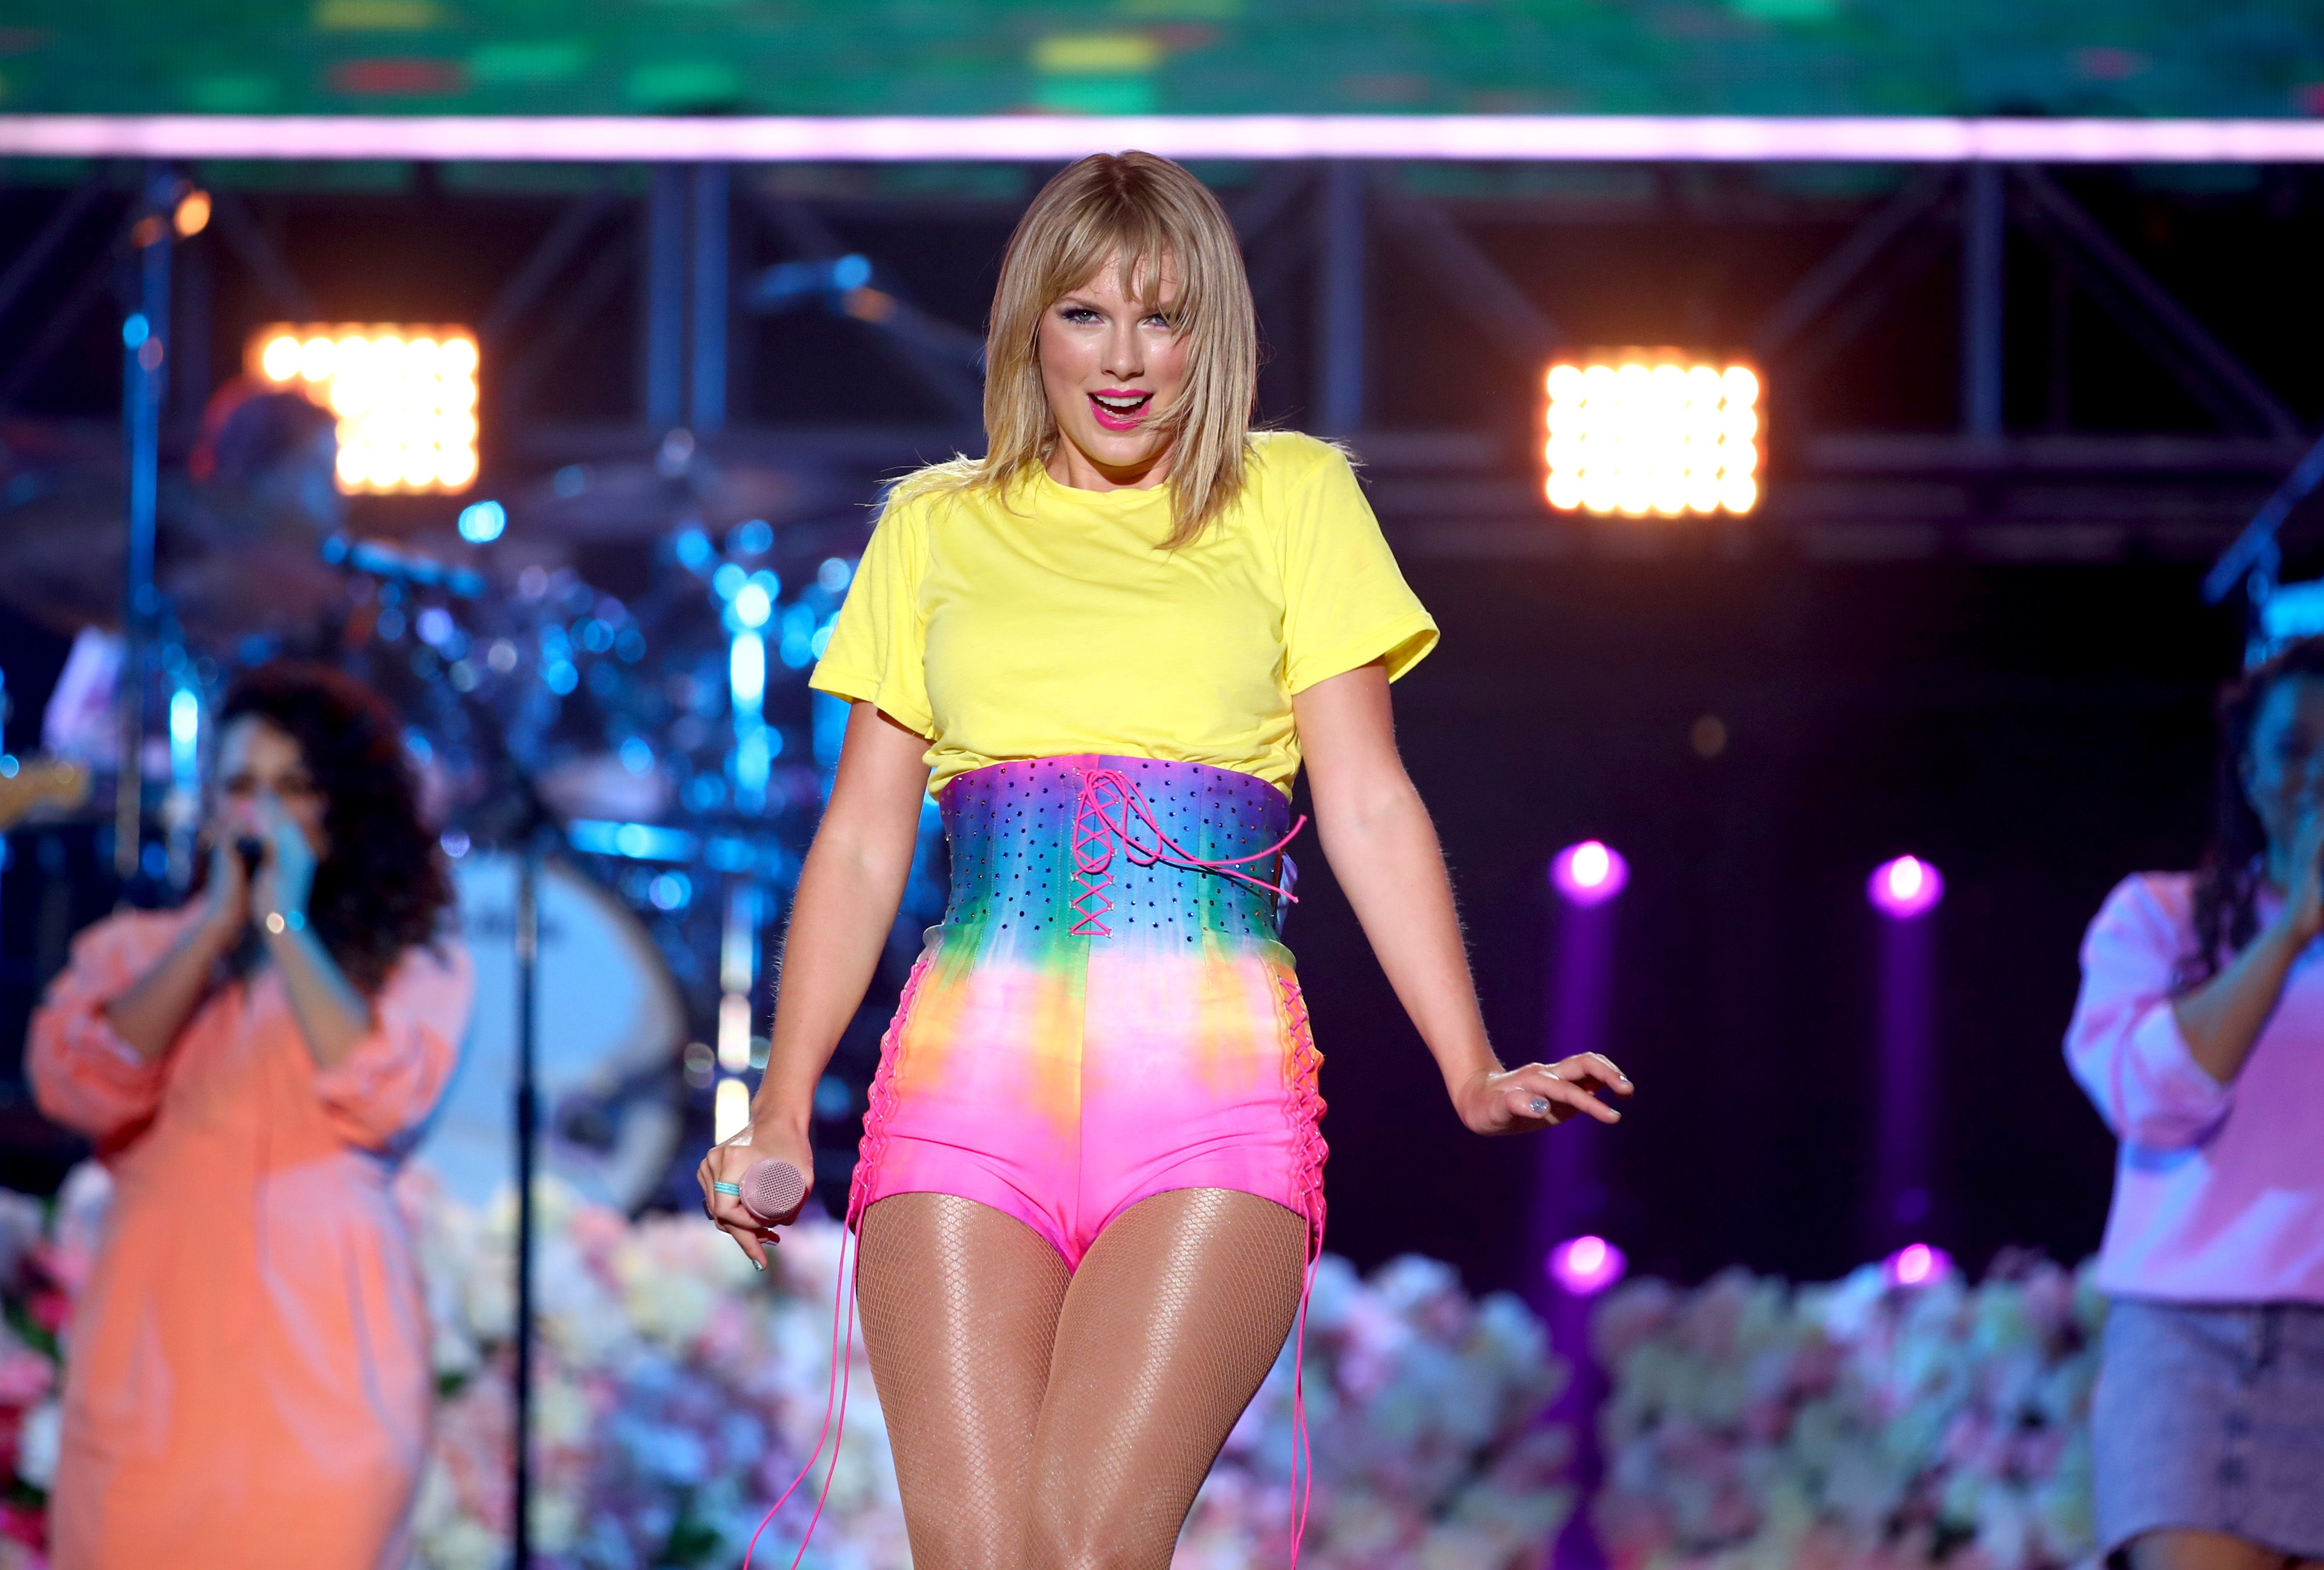 Taylor Swift Refuses To Talk Things Out With Scooter Braun Amid Drama